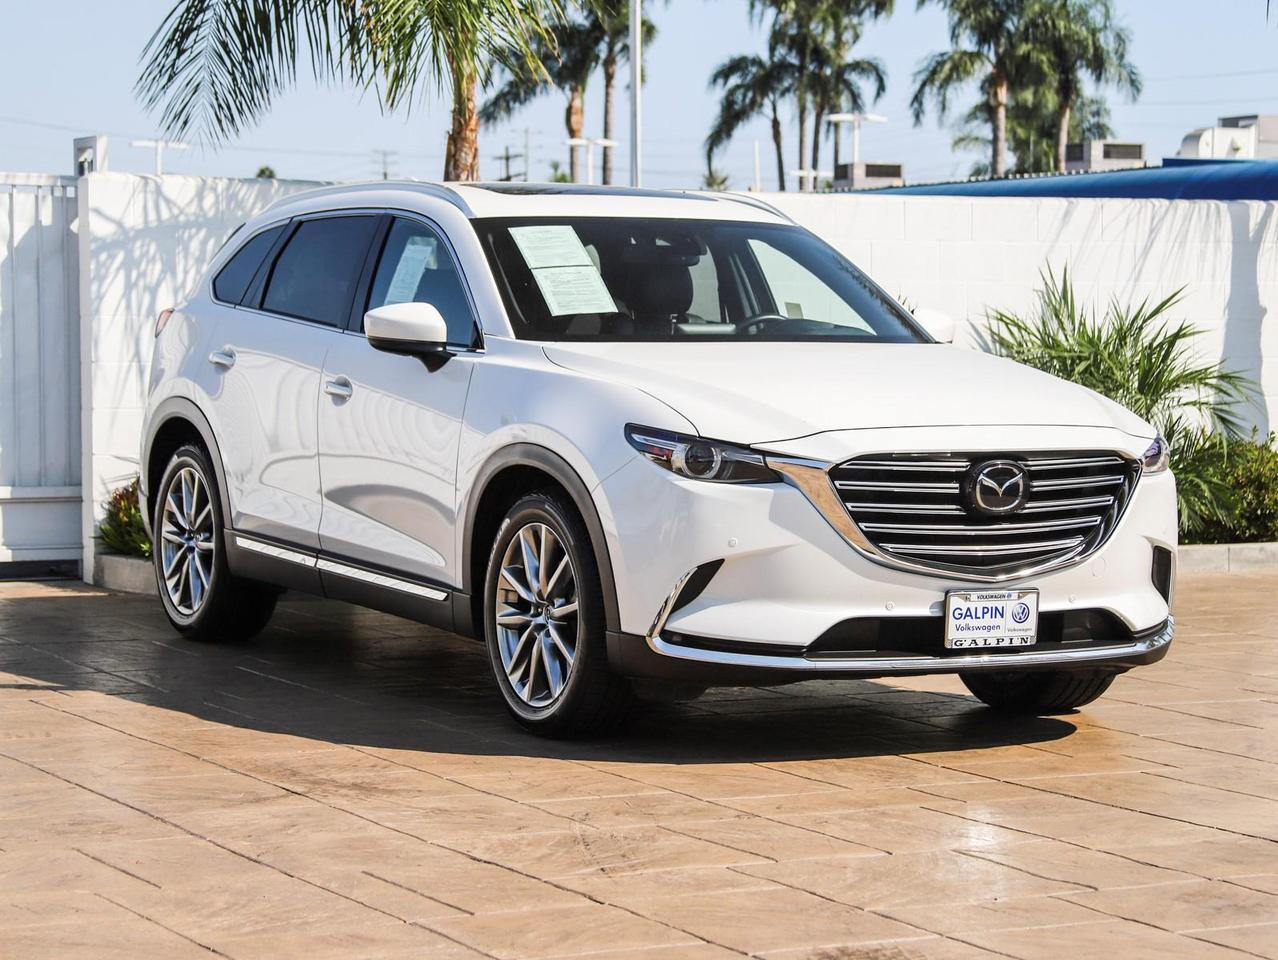 2018 Mazda Cx-9 Grand Touring North Hills CA